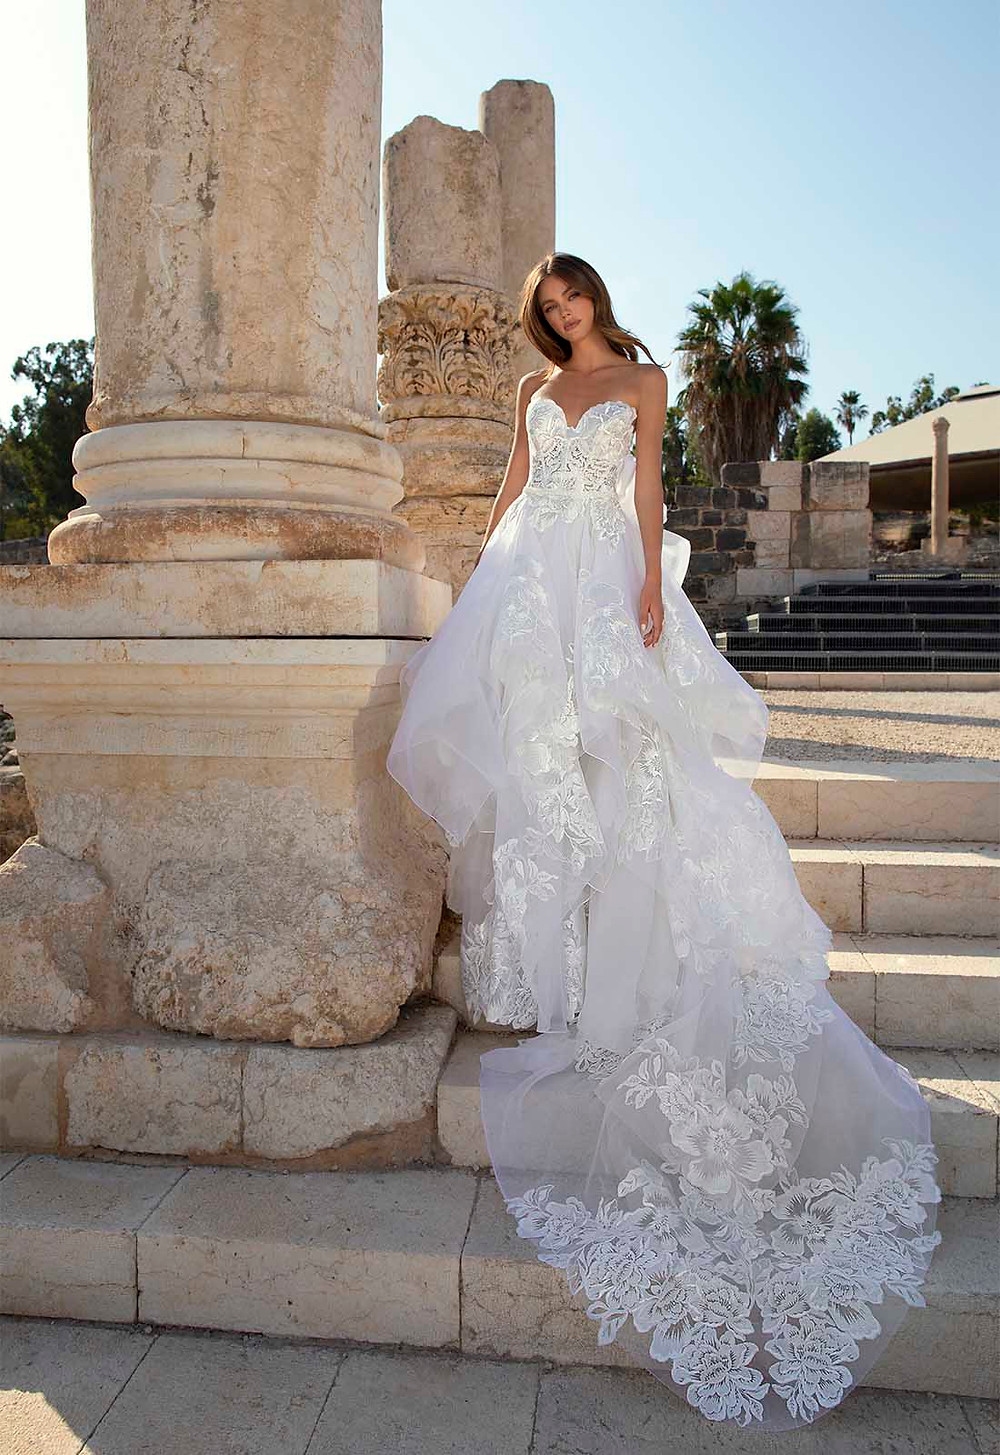 A Pnina Tornai strapless ball gown wedding dress with a layered tulle skirt, lace and a sweetheart neckline